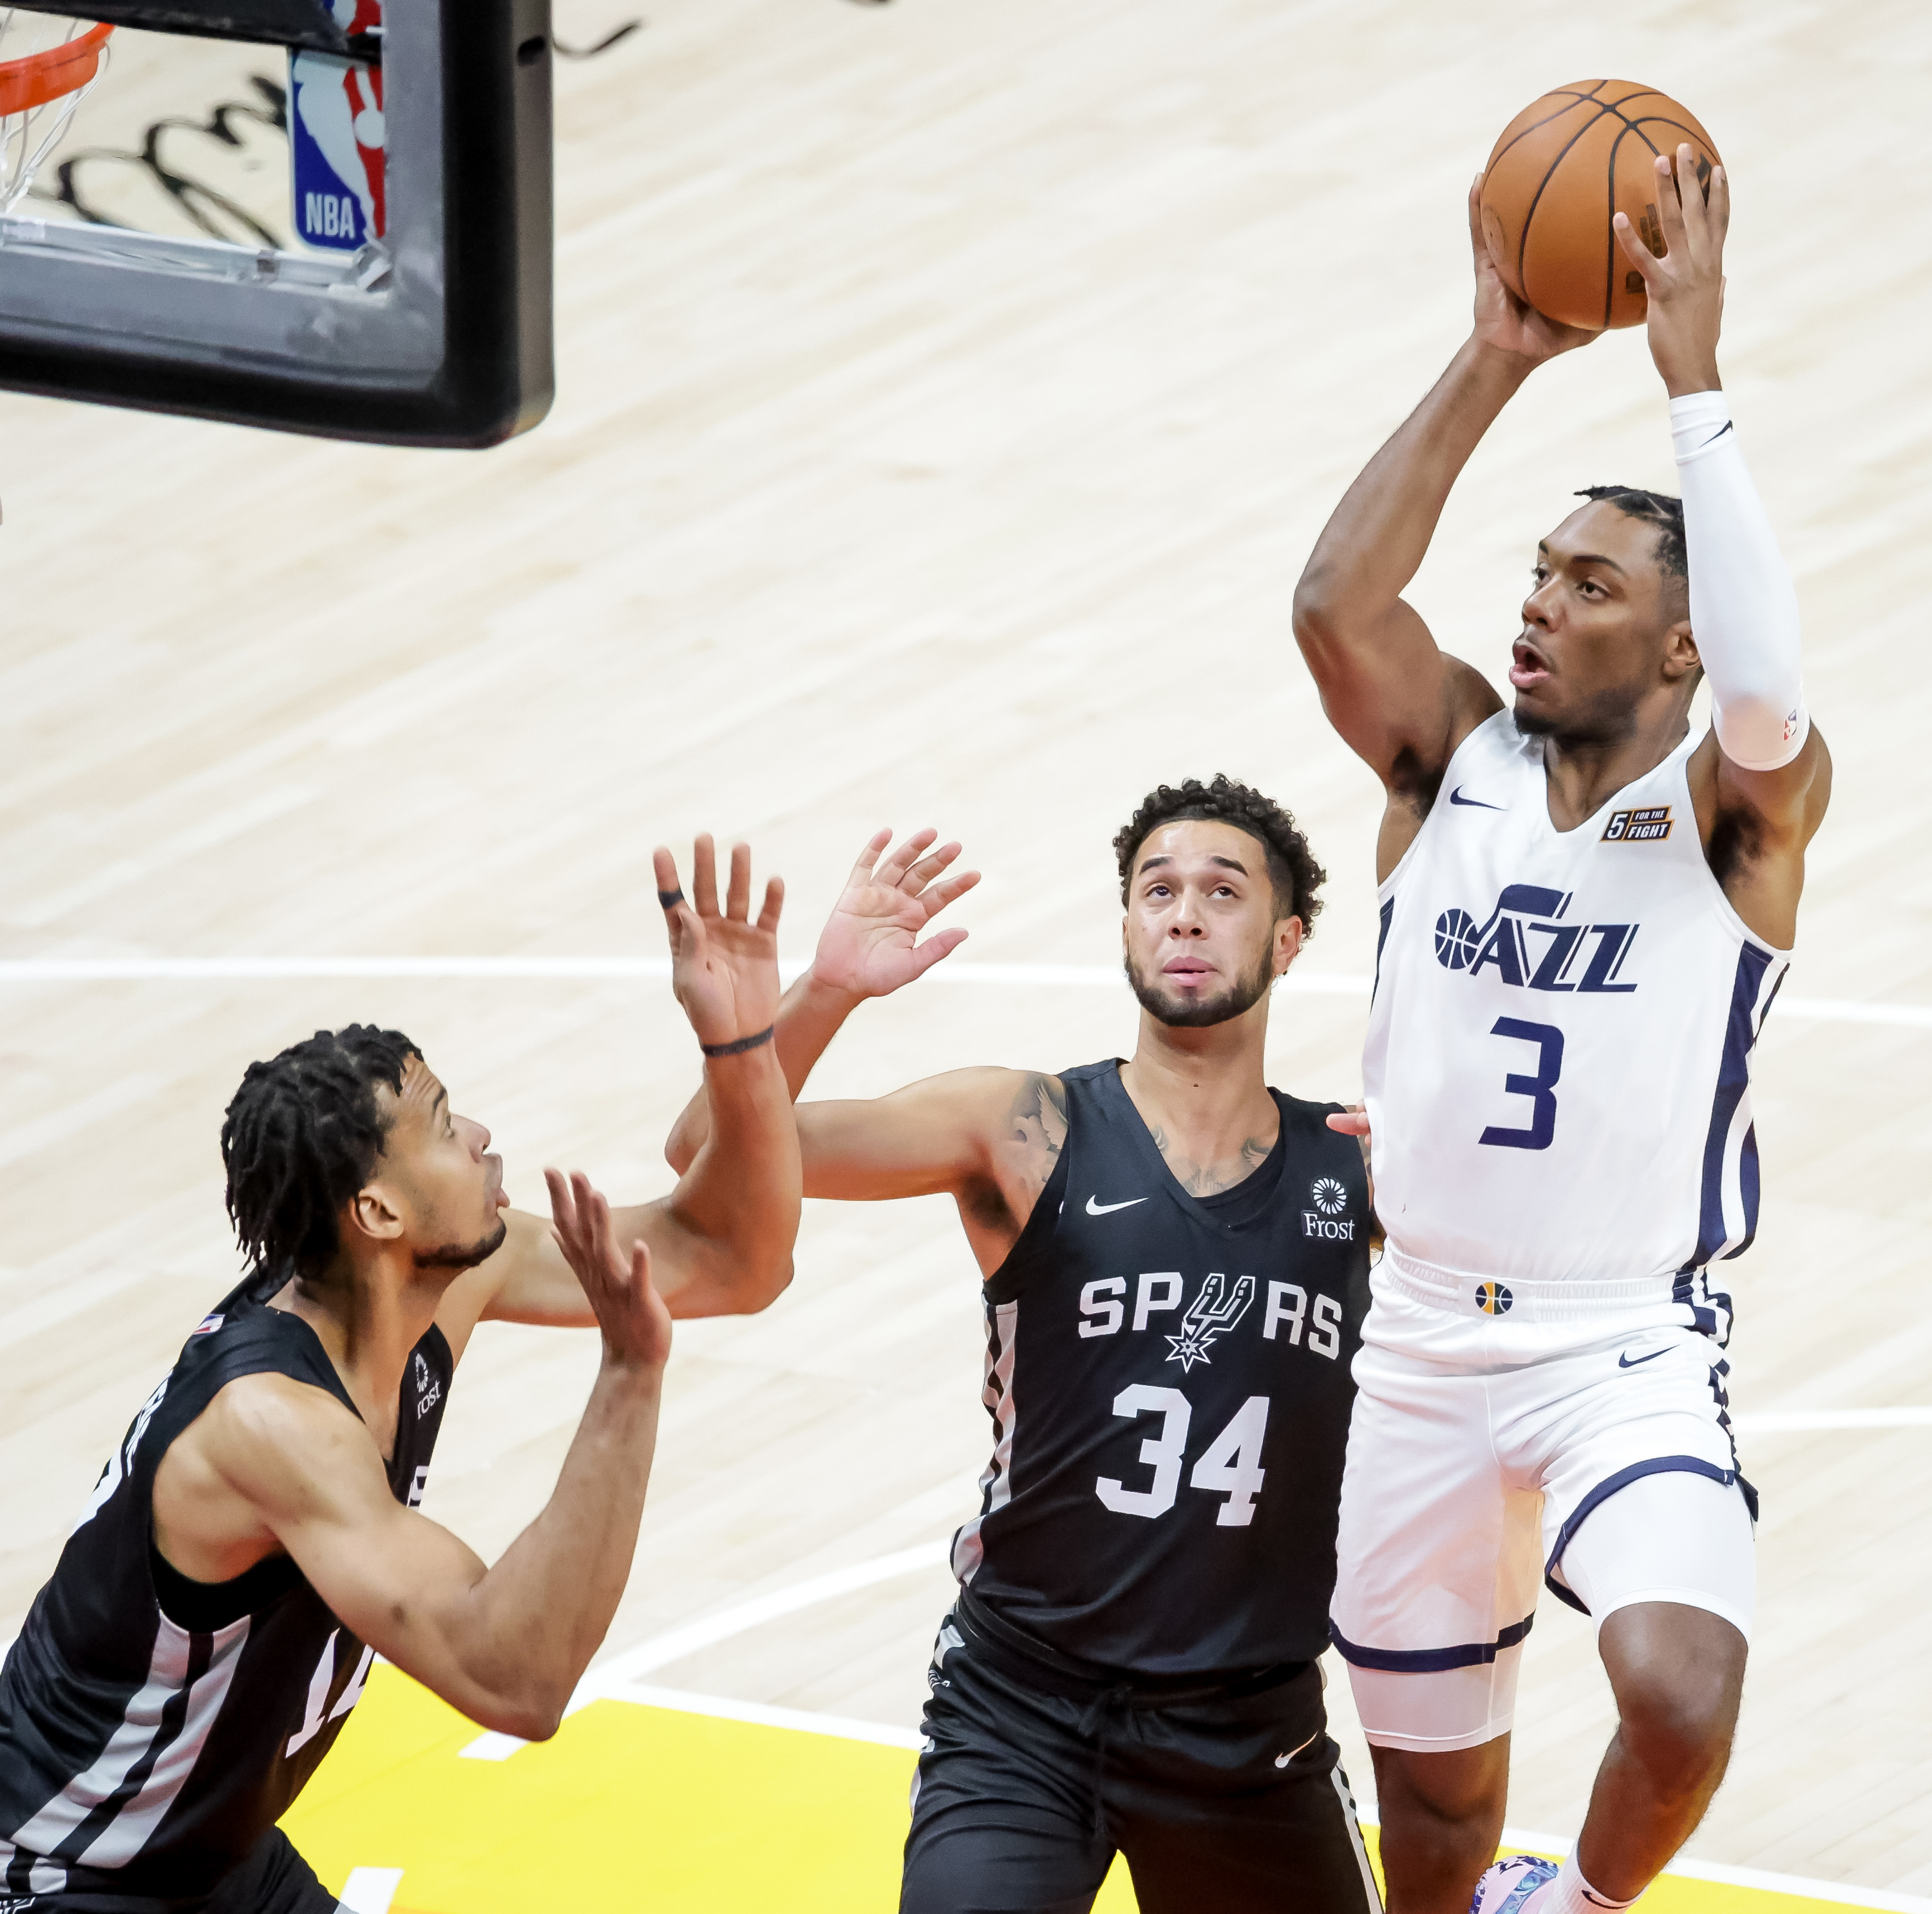 Utah Jazz guard Trent Forrest shoots over San Antonio's Skal Labissiere and Anthony Mathis during Summer League game at Vivint Arena in Salt Lake City on Tuesday, Aug. 3, 2021.